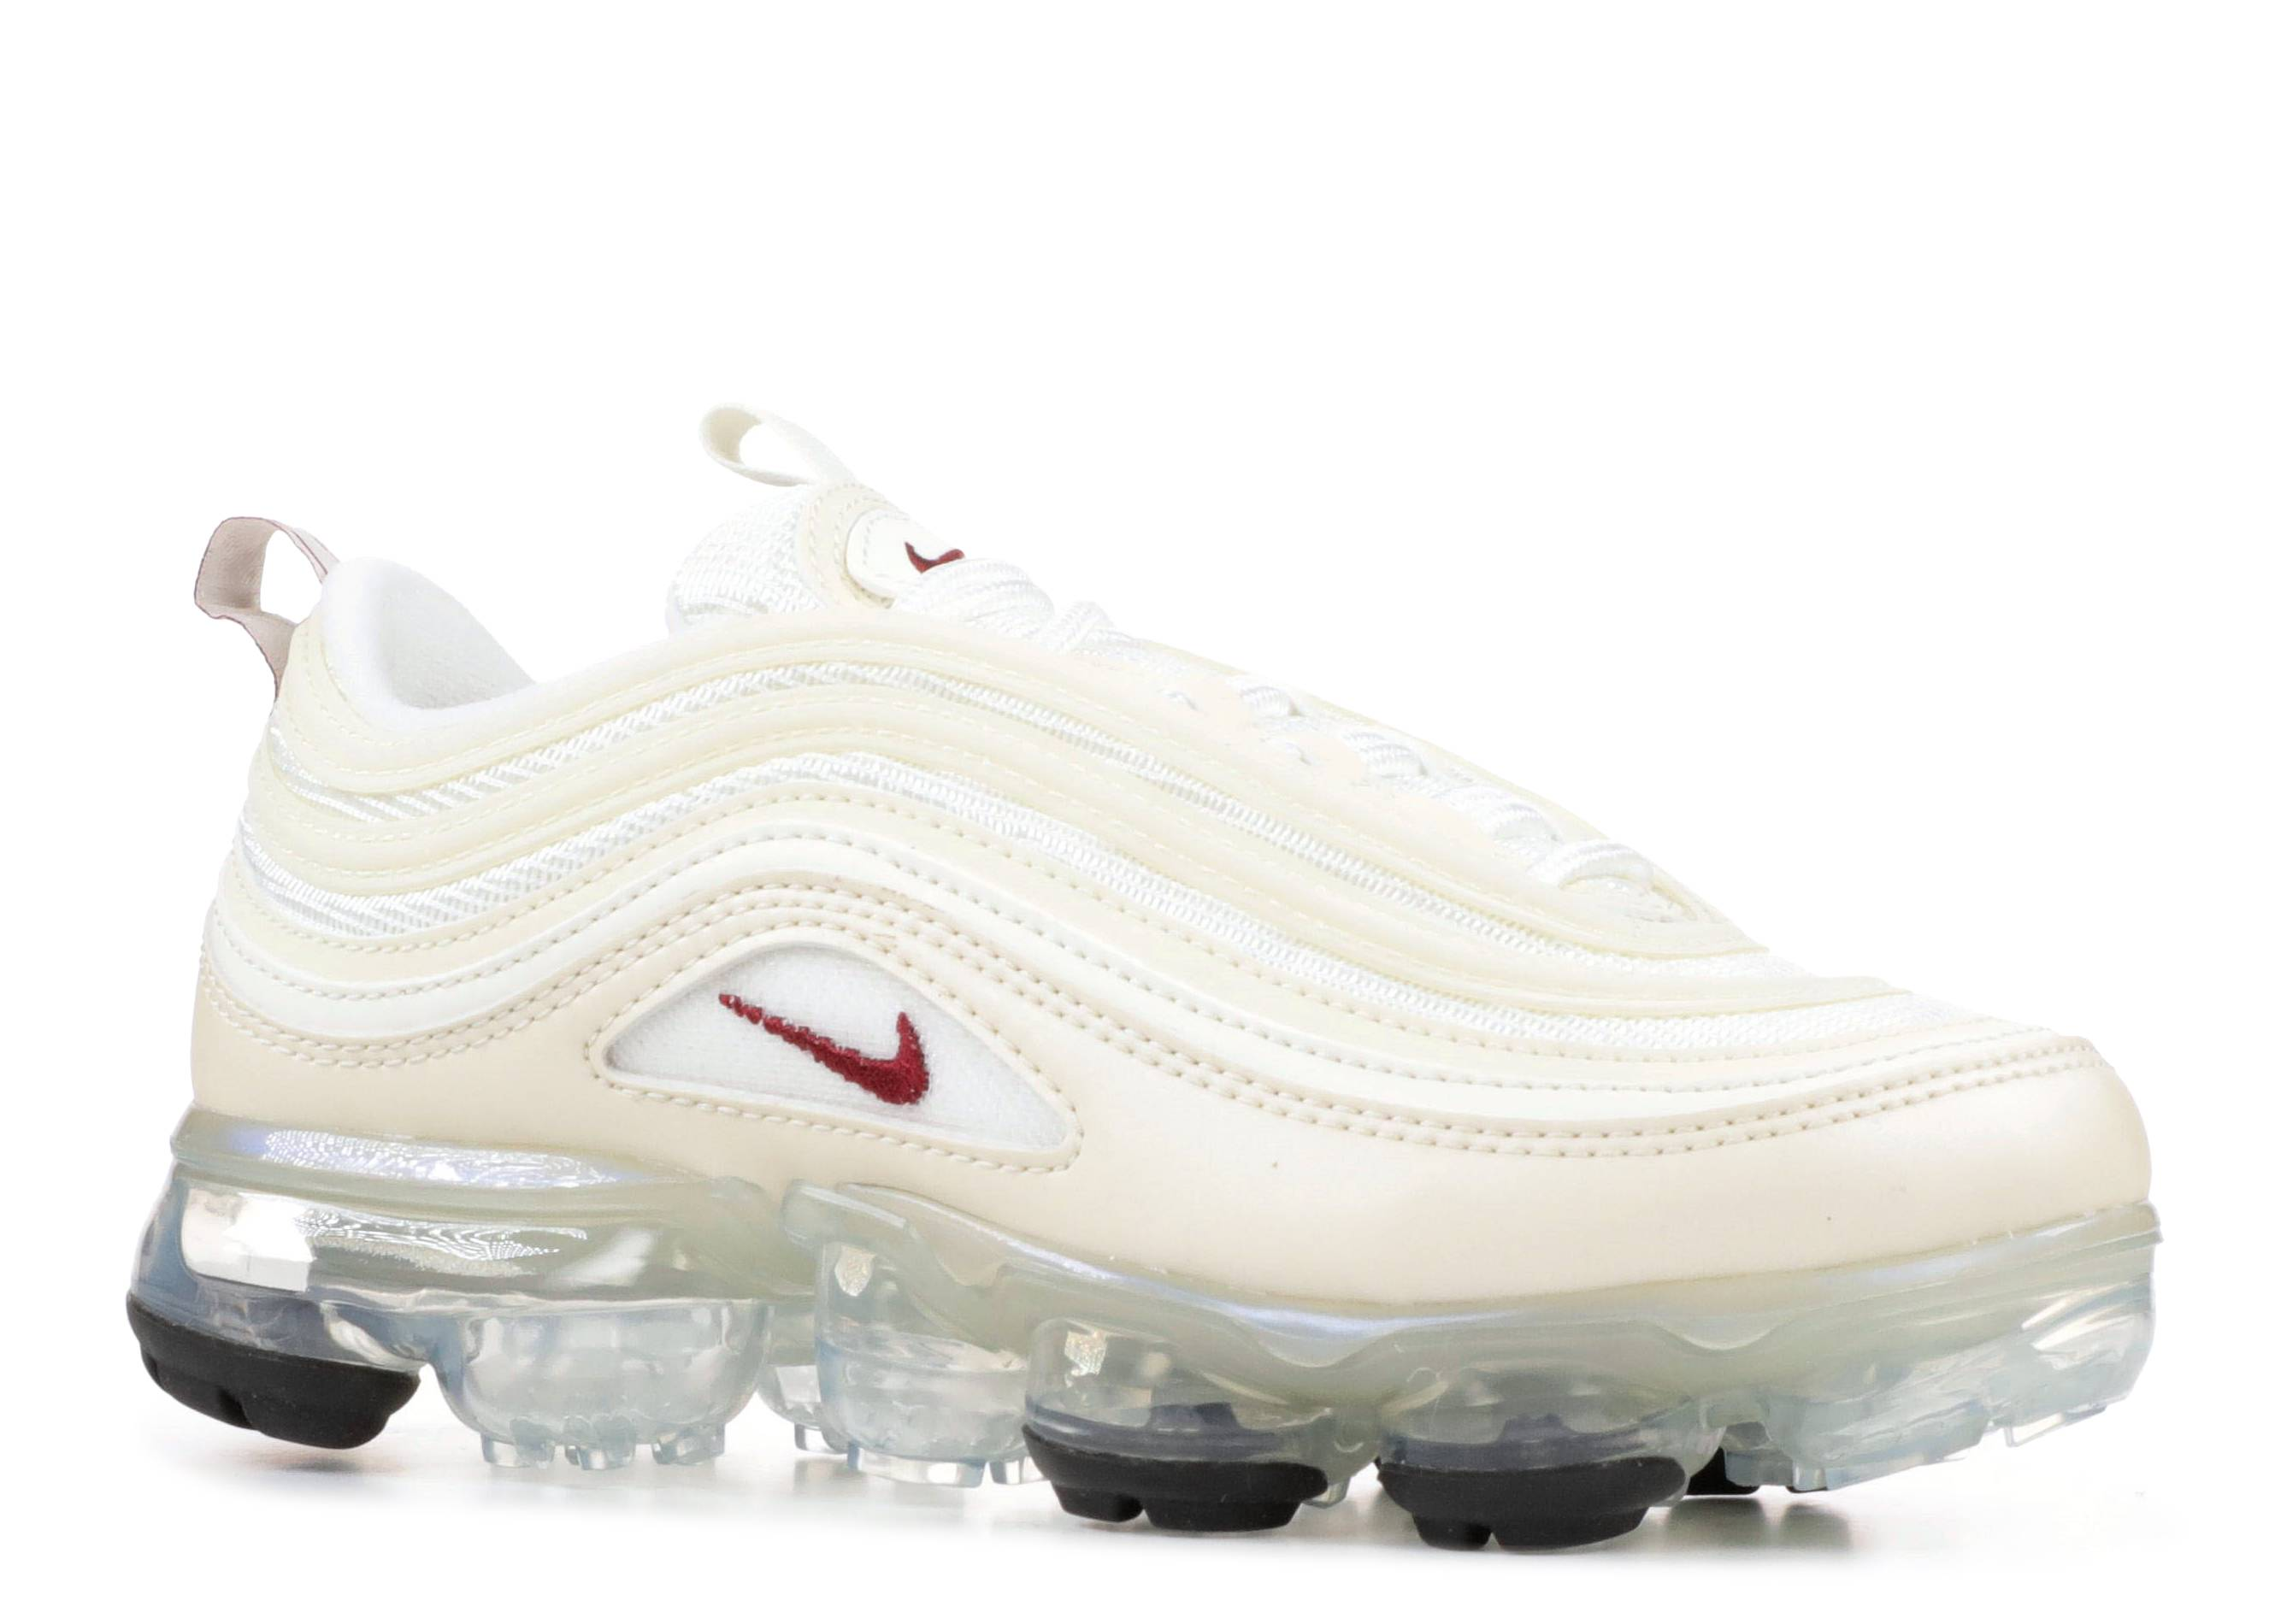 finest selection 2286c cdf17 W Air Vapormax 97 - Nike - ao4542 900 - mtlc cashmere/team ...